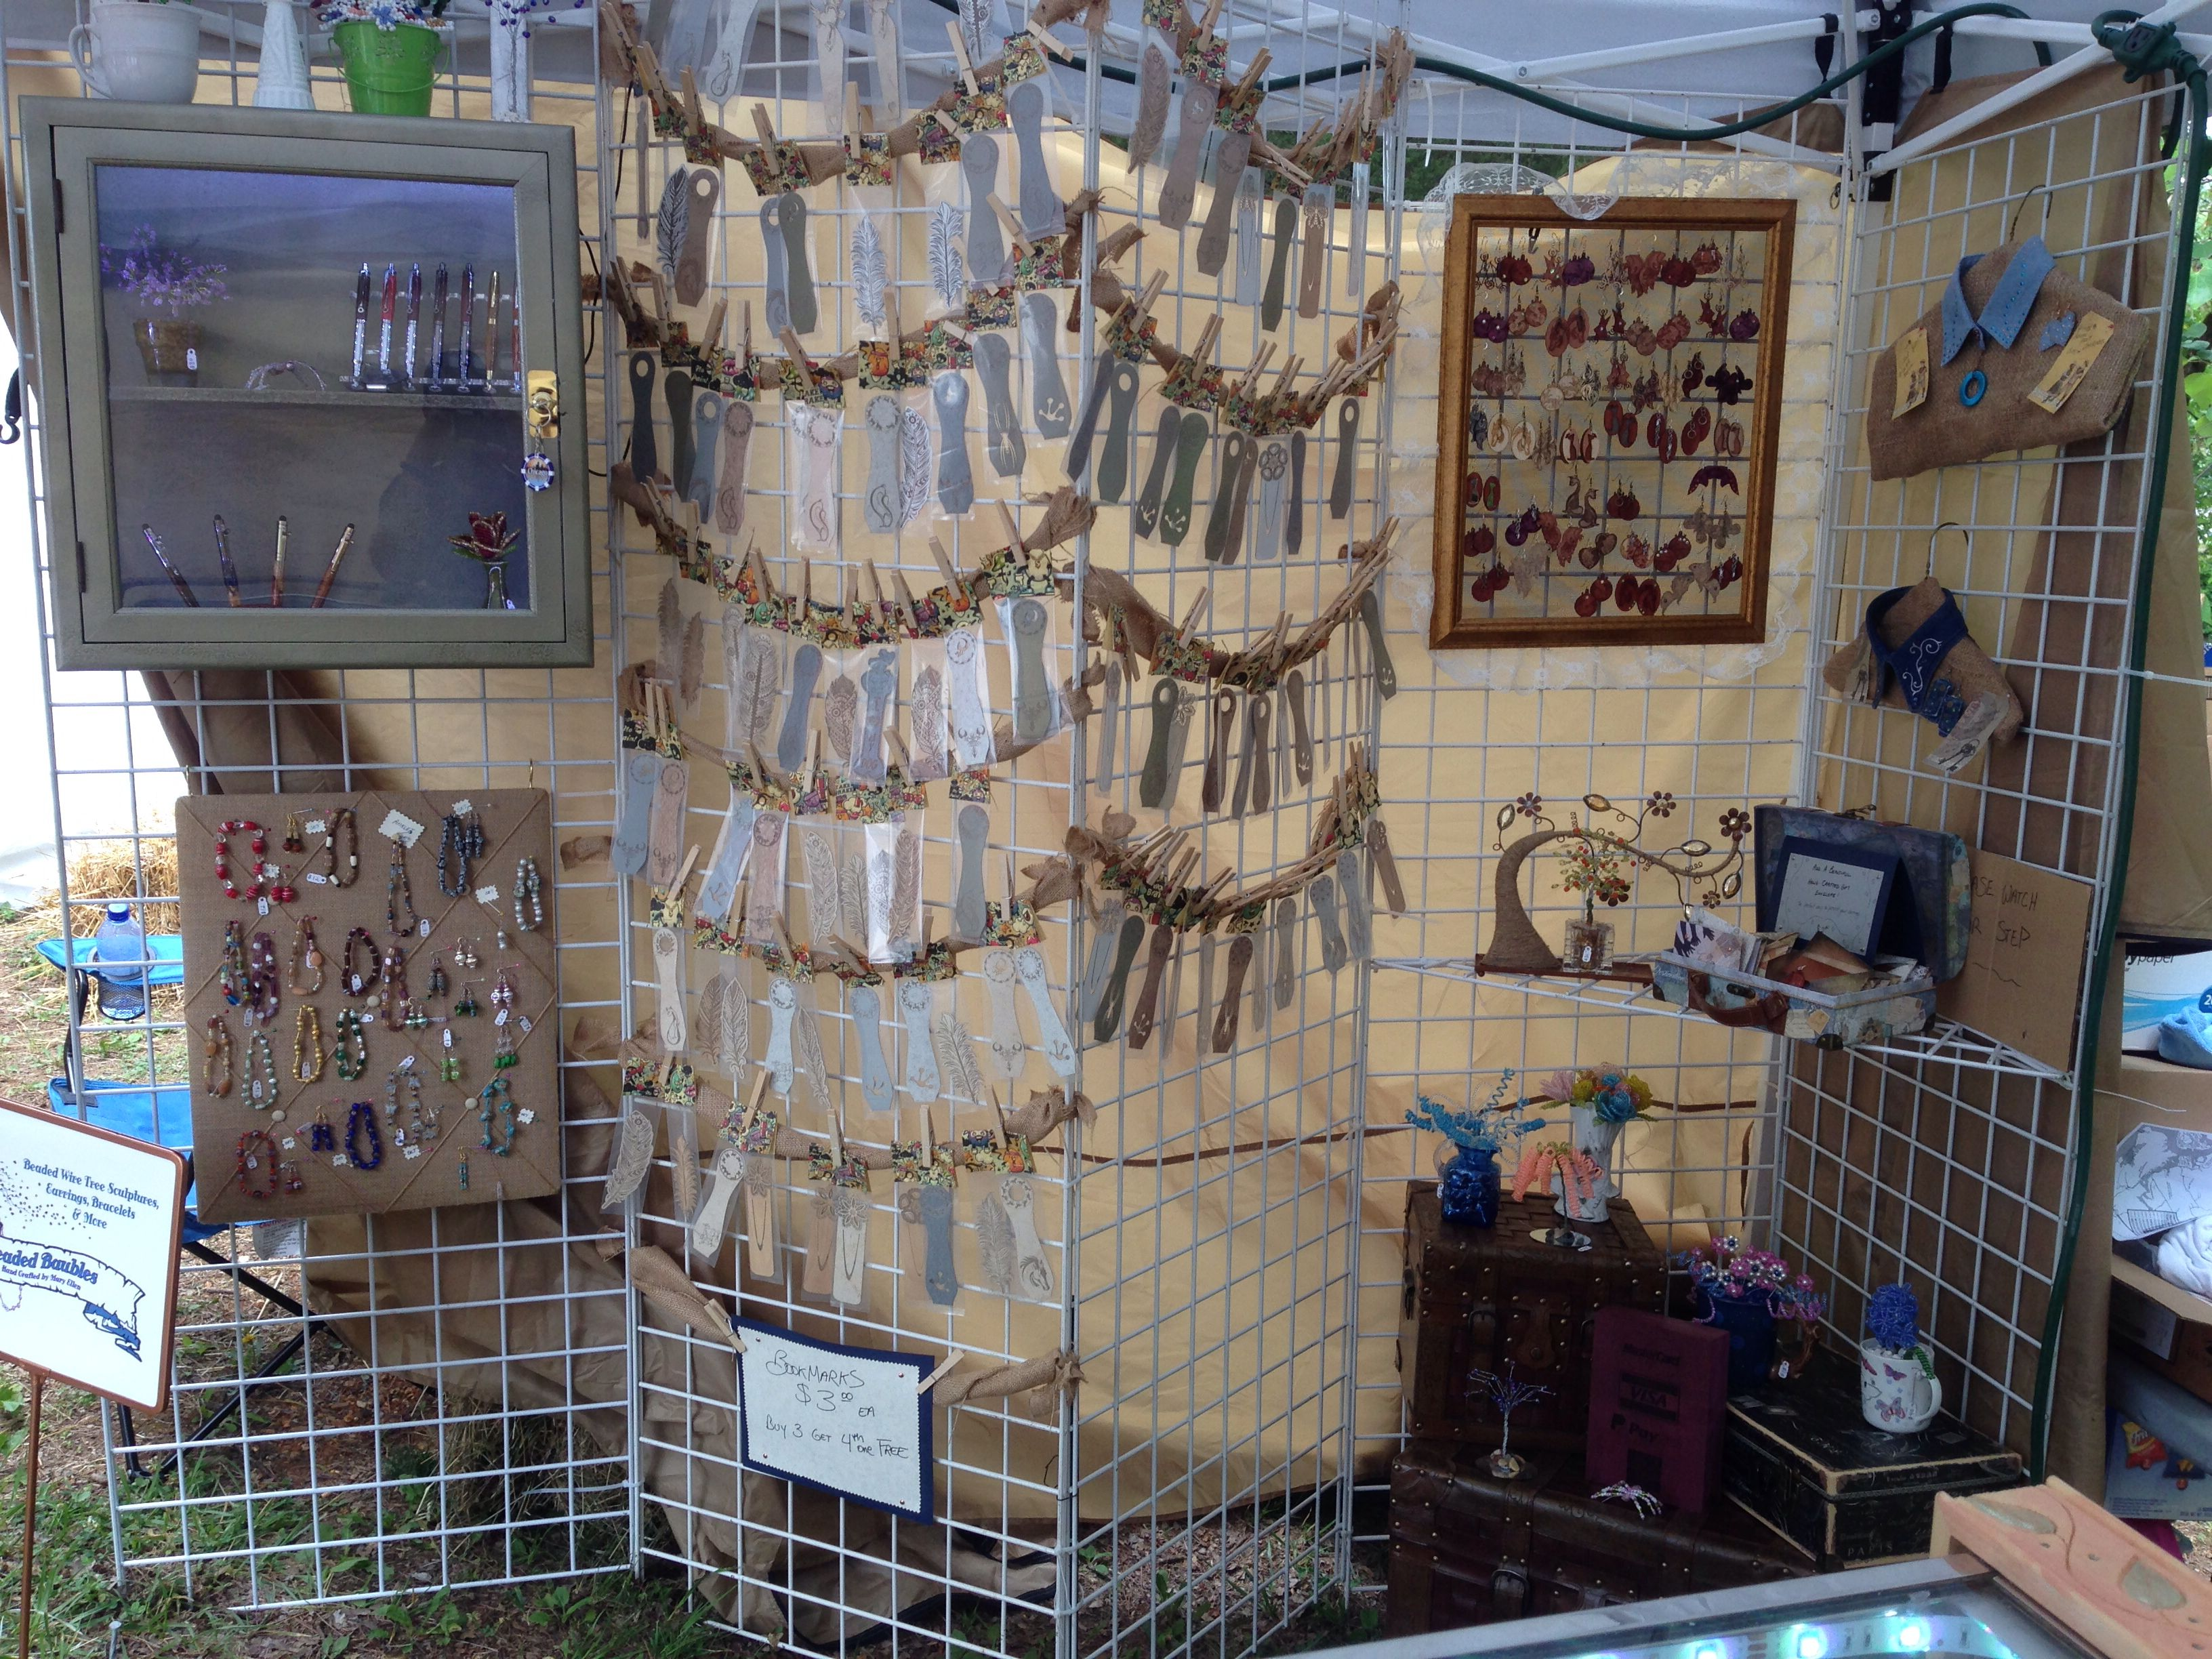 Our first #crafts #booth here you can see our bookmark display using clothes pins and burlap. #lenoircityartsandcraft